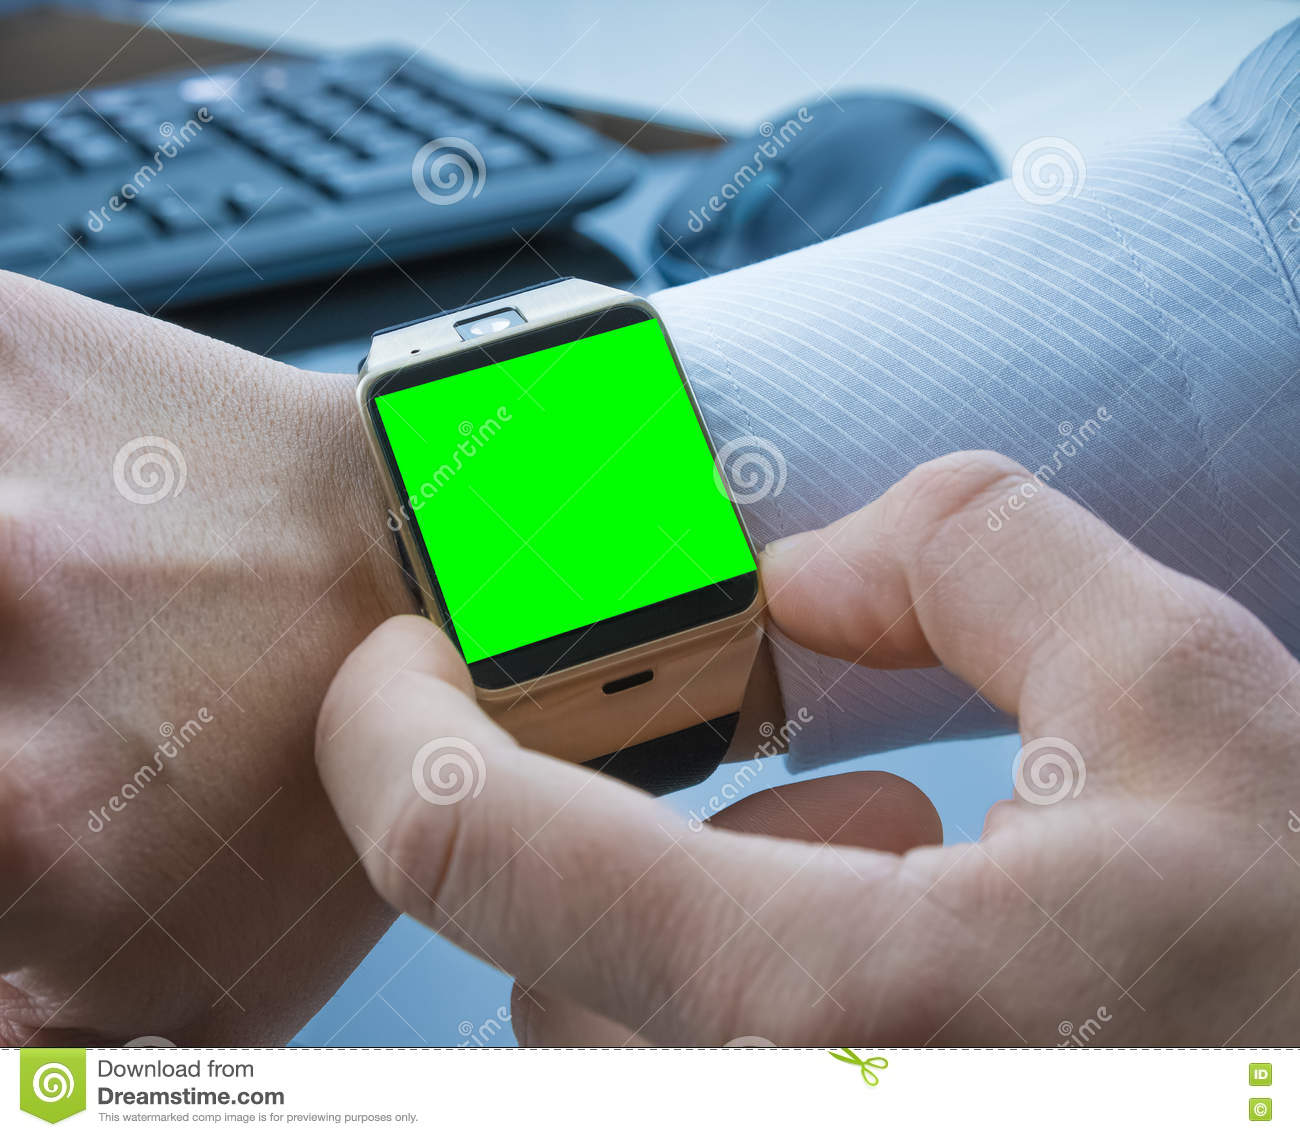 Business Man Using His Smartwatch App With Chroma Key Green